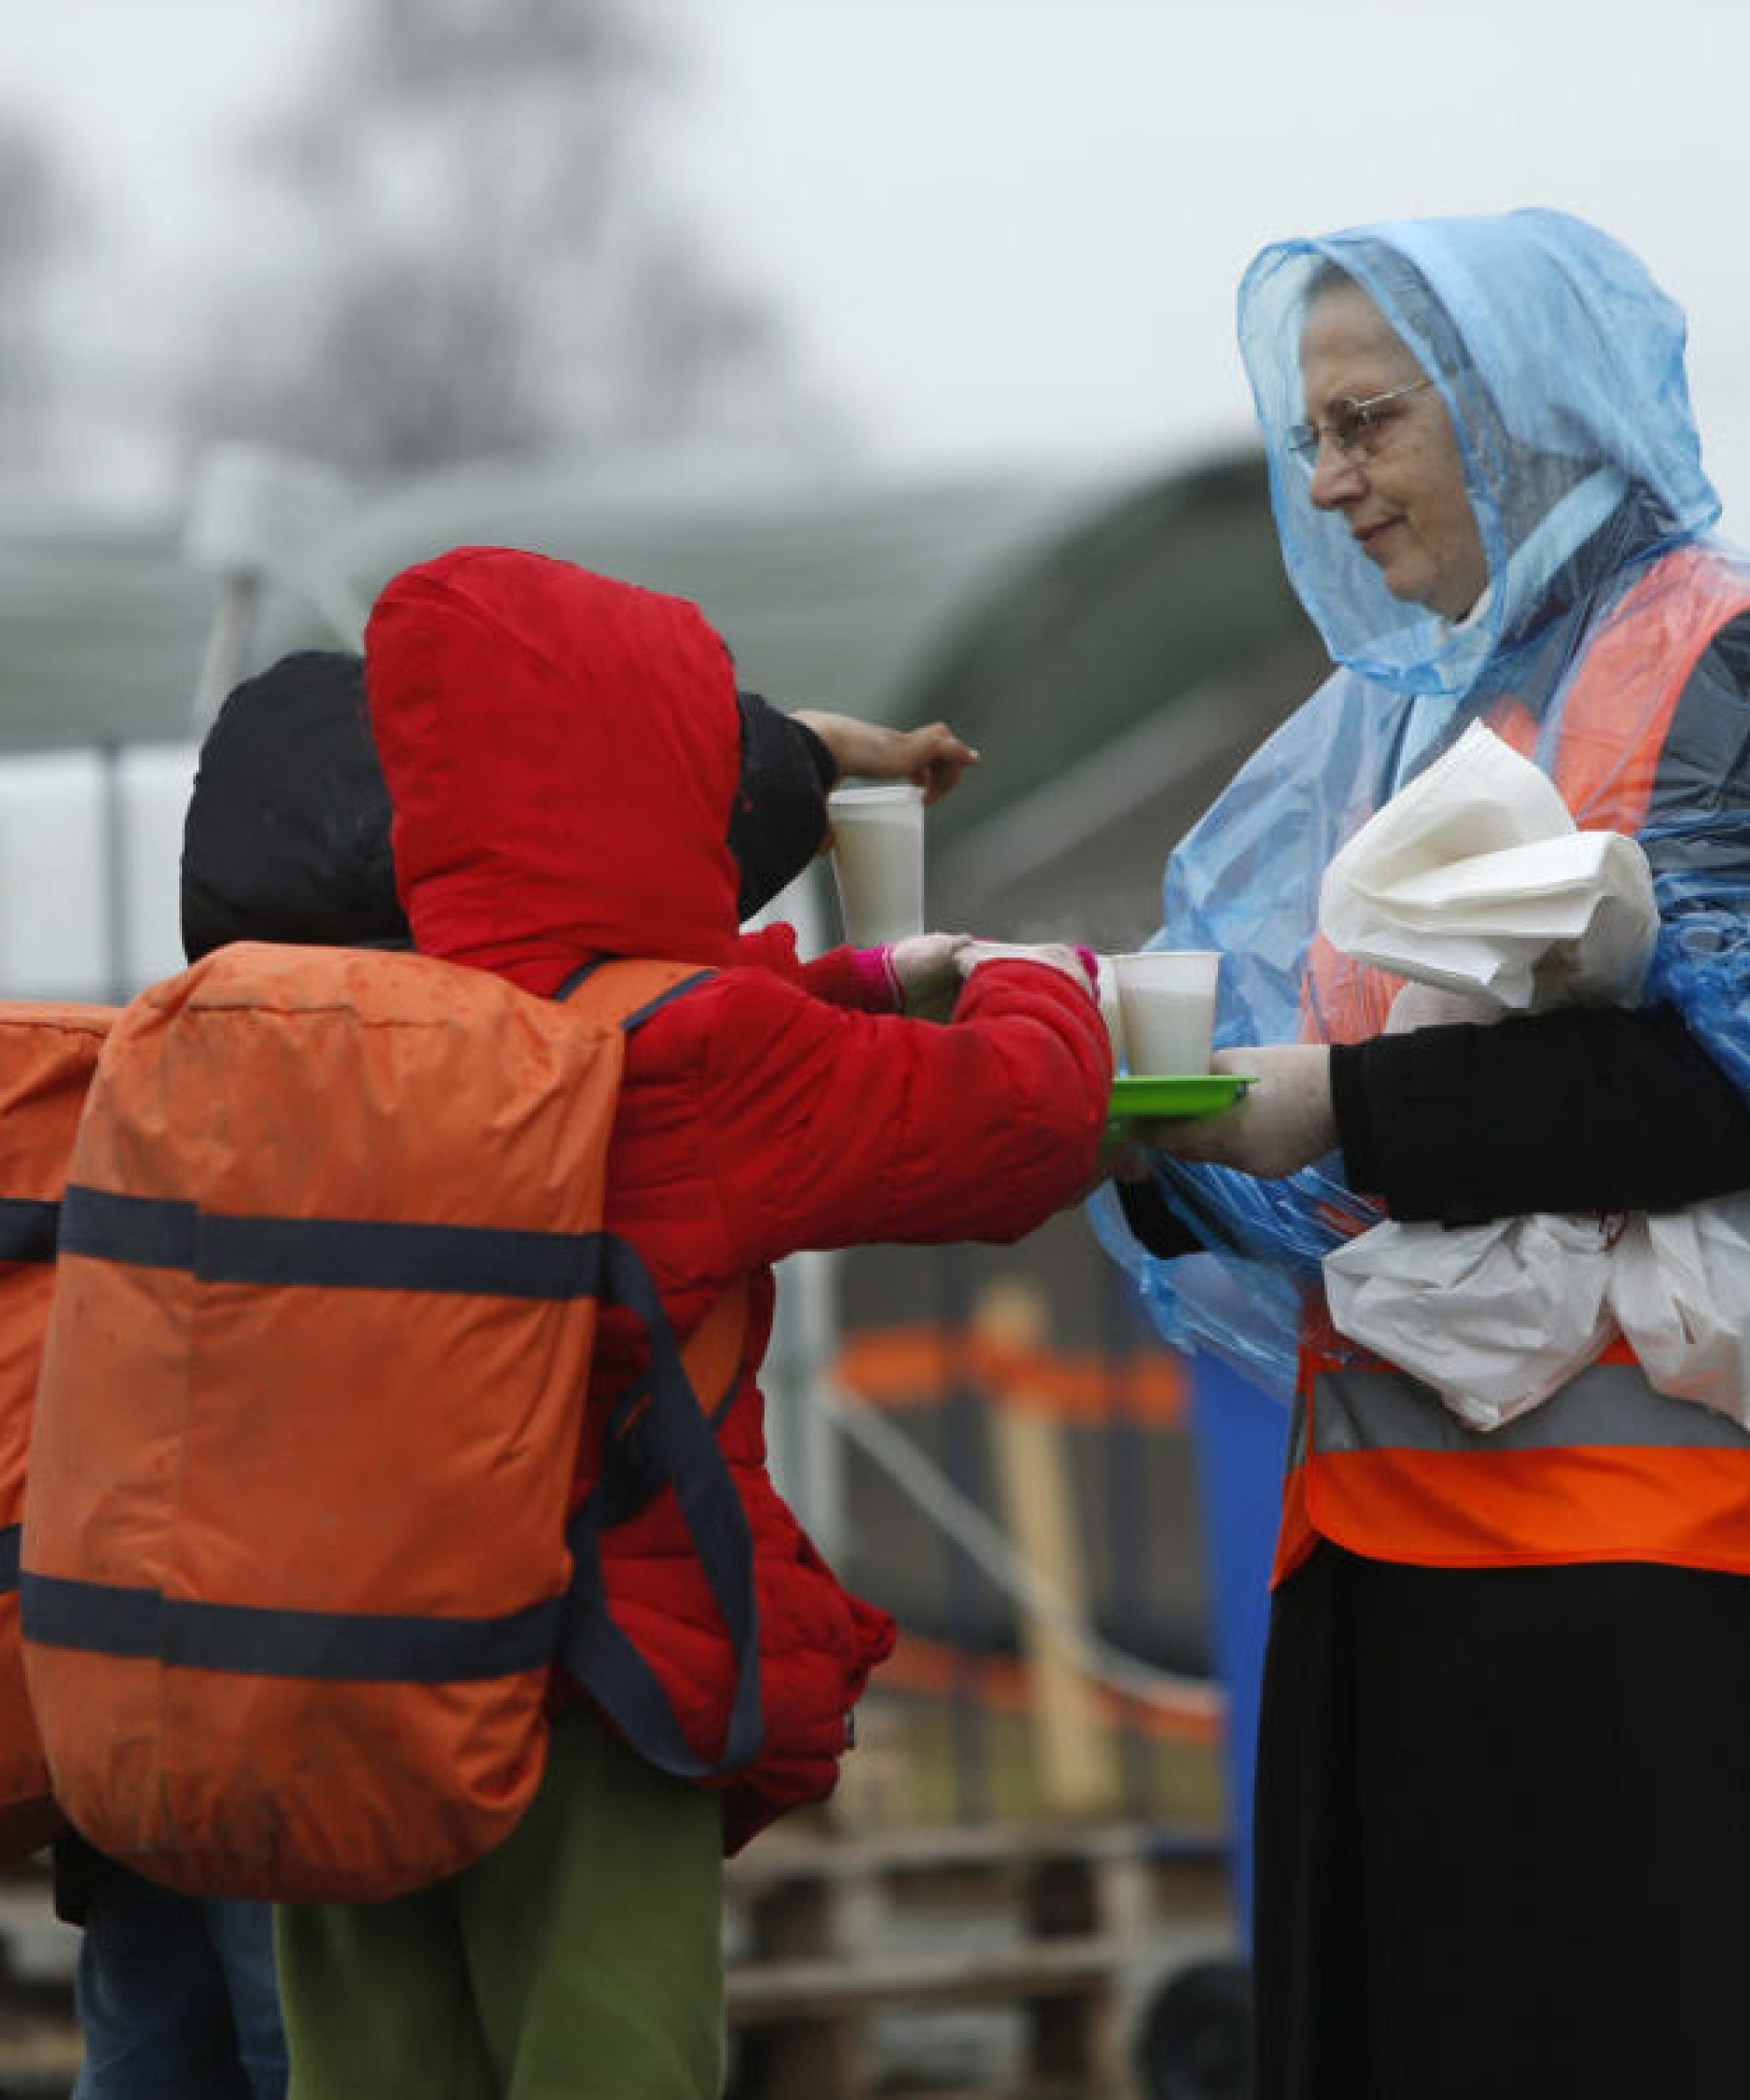 Migrant children takes cups of tea served by a nun as migrants and refugees are registered by the authorities before continuing their train journey to western Europe at a refugee transit camp in Slavonski Brod, Croatia.